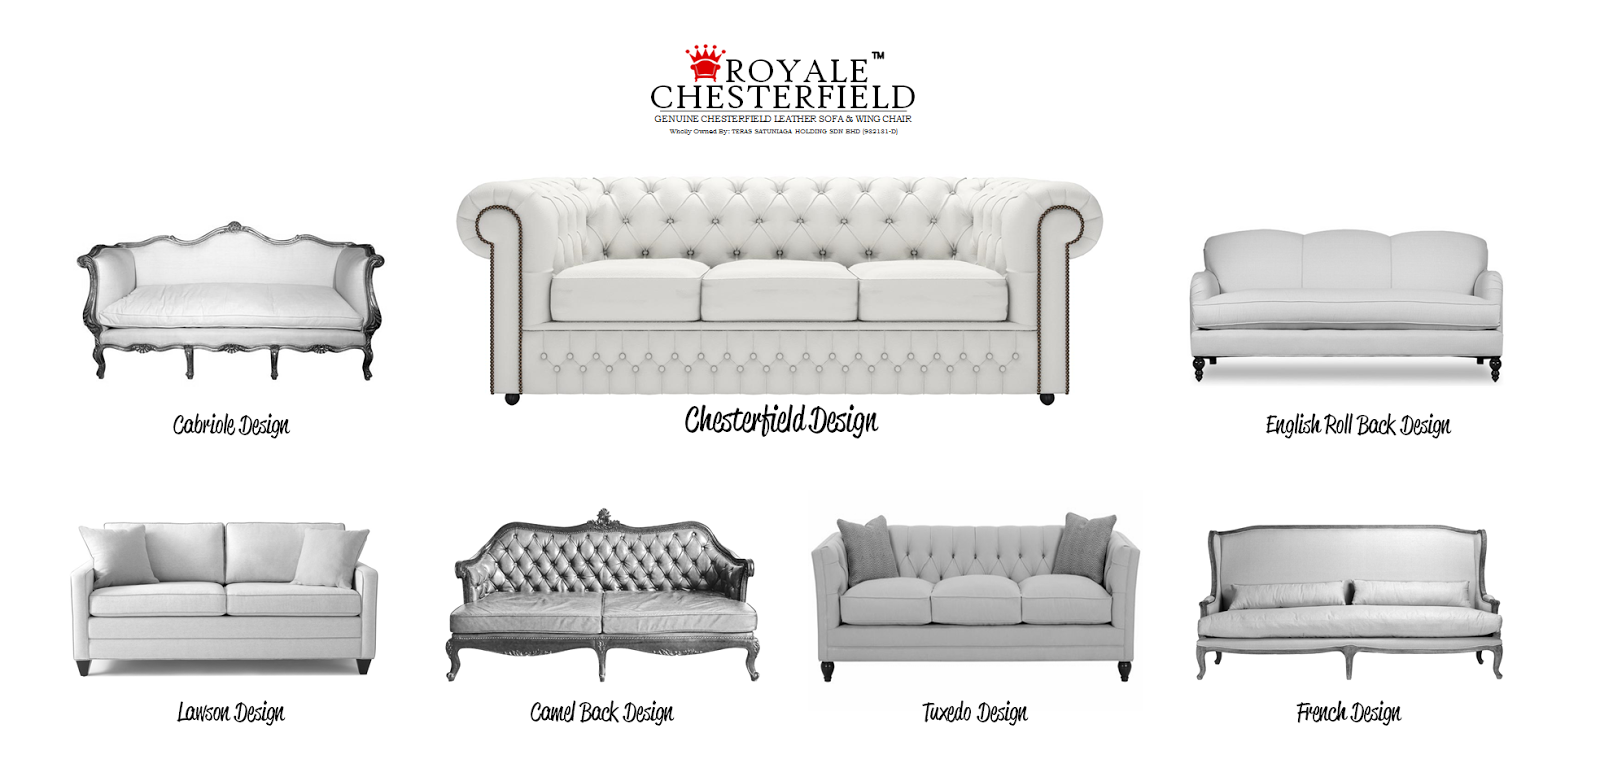 ROYALE CHESTERFIELD SOFA DESIGN MAKE YOUR CHOICE NOW